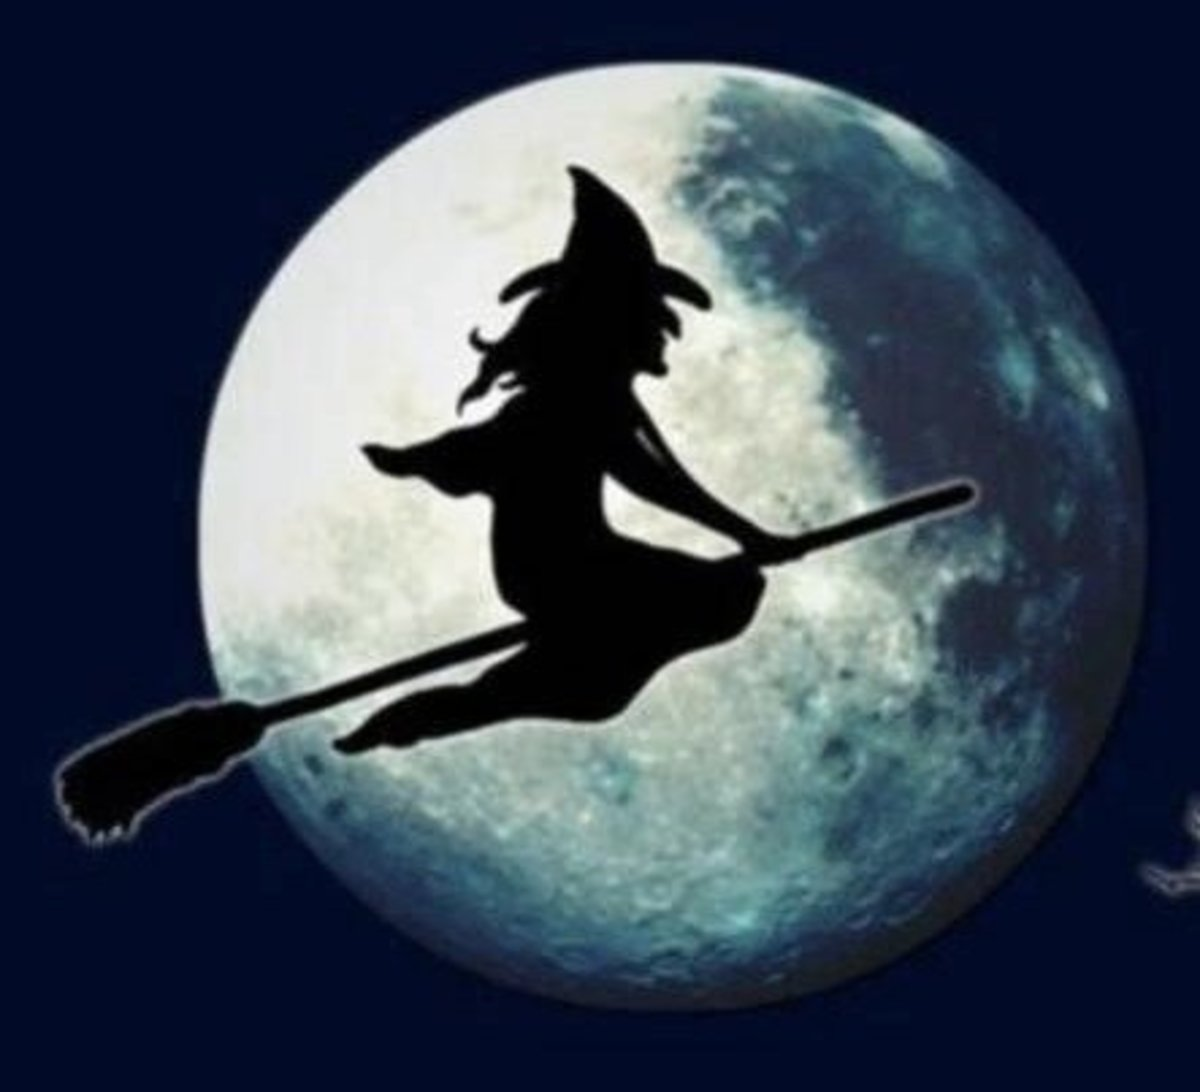 A Halloween witch against the full moon.